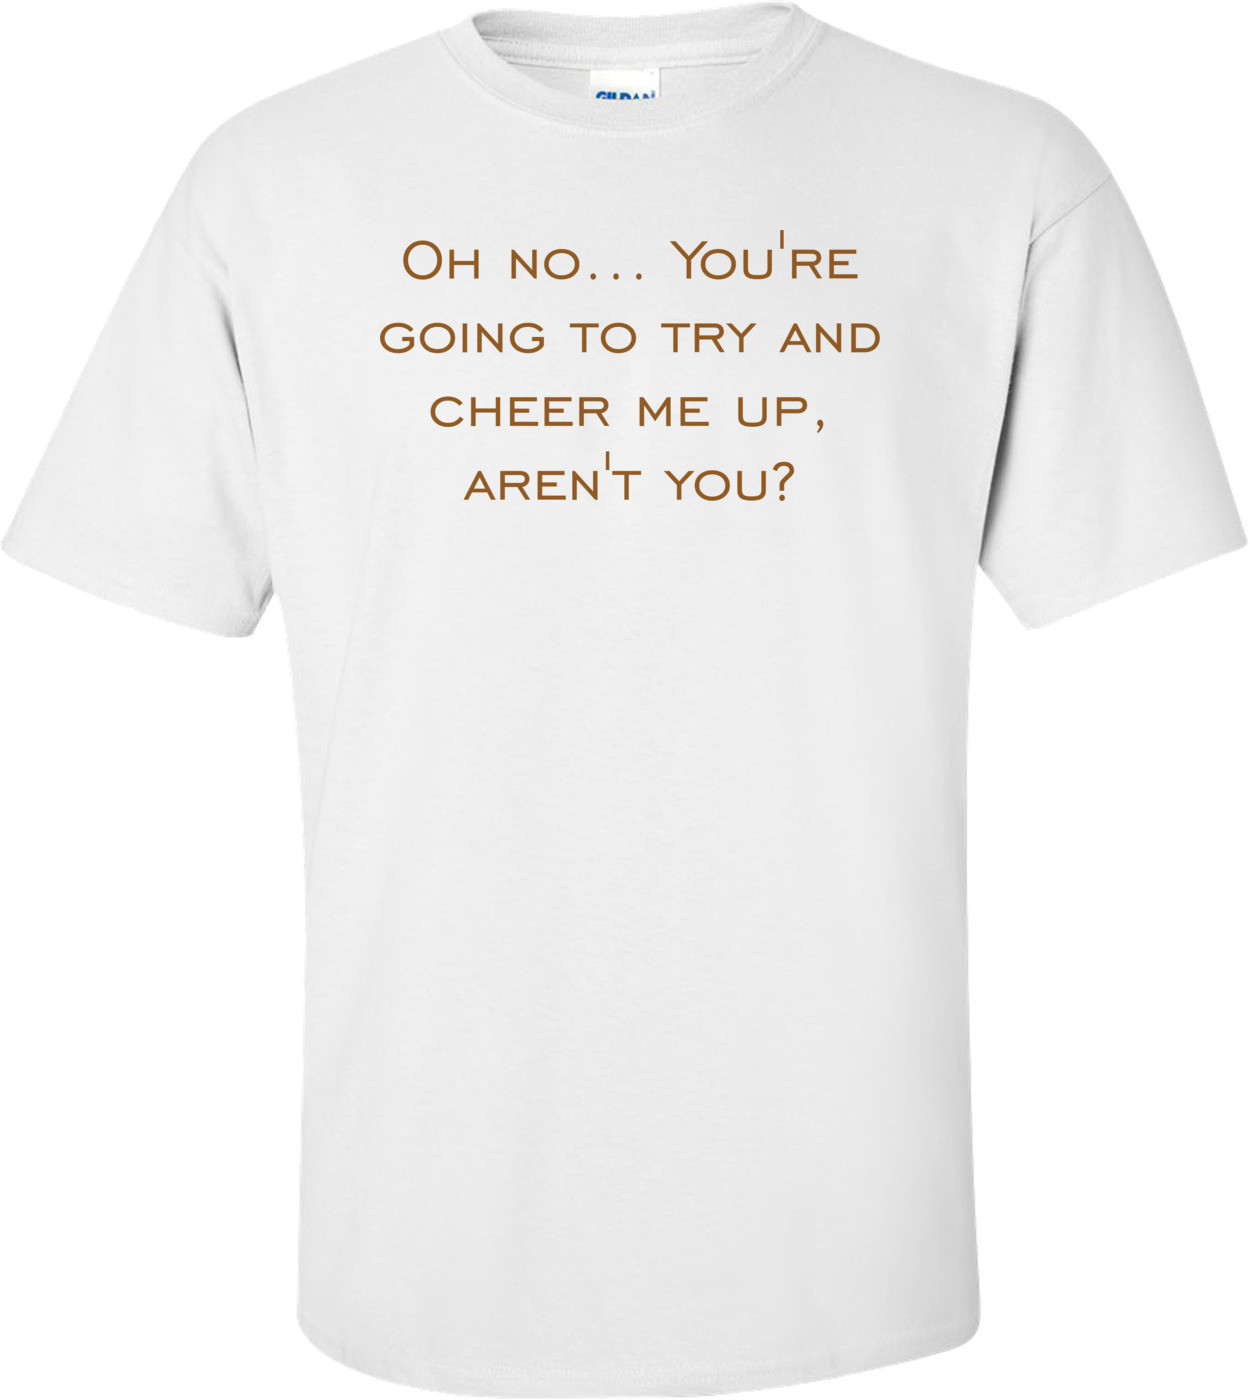 Oh no... You're going to try and cheer me up, aren't you? Shirt